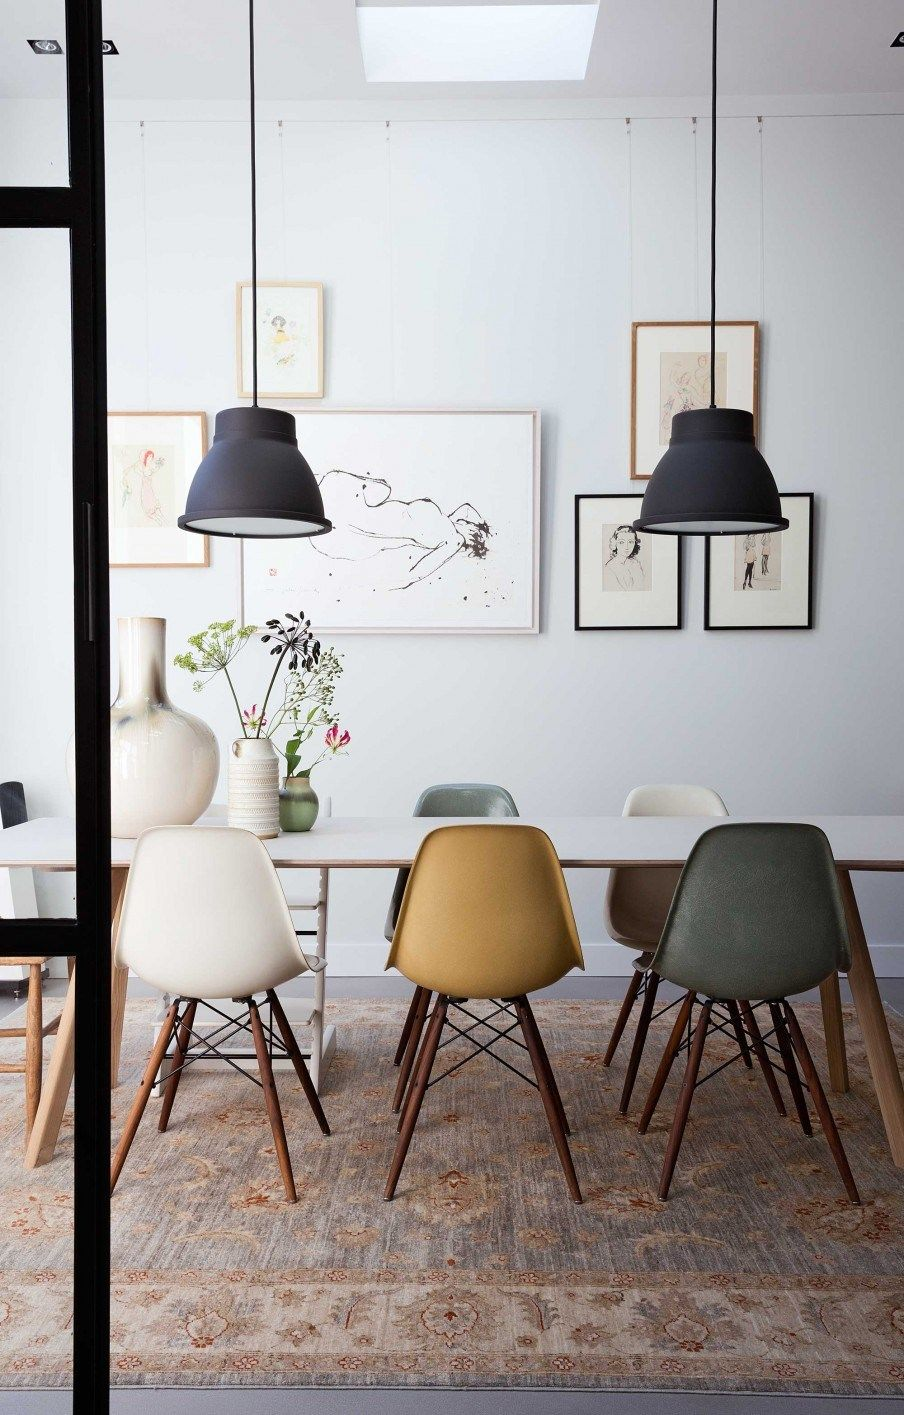 b36b70a8350 How to Choose the Right Type of Pendant Lighting